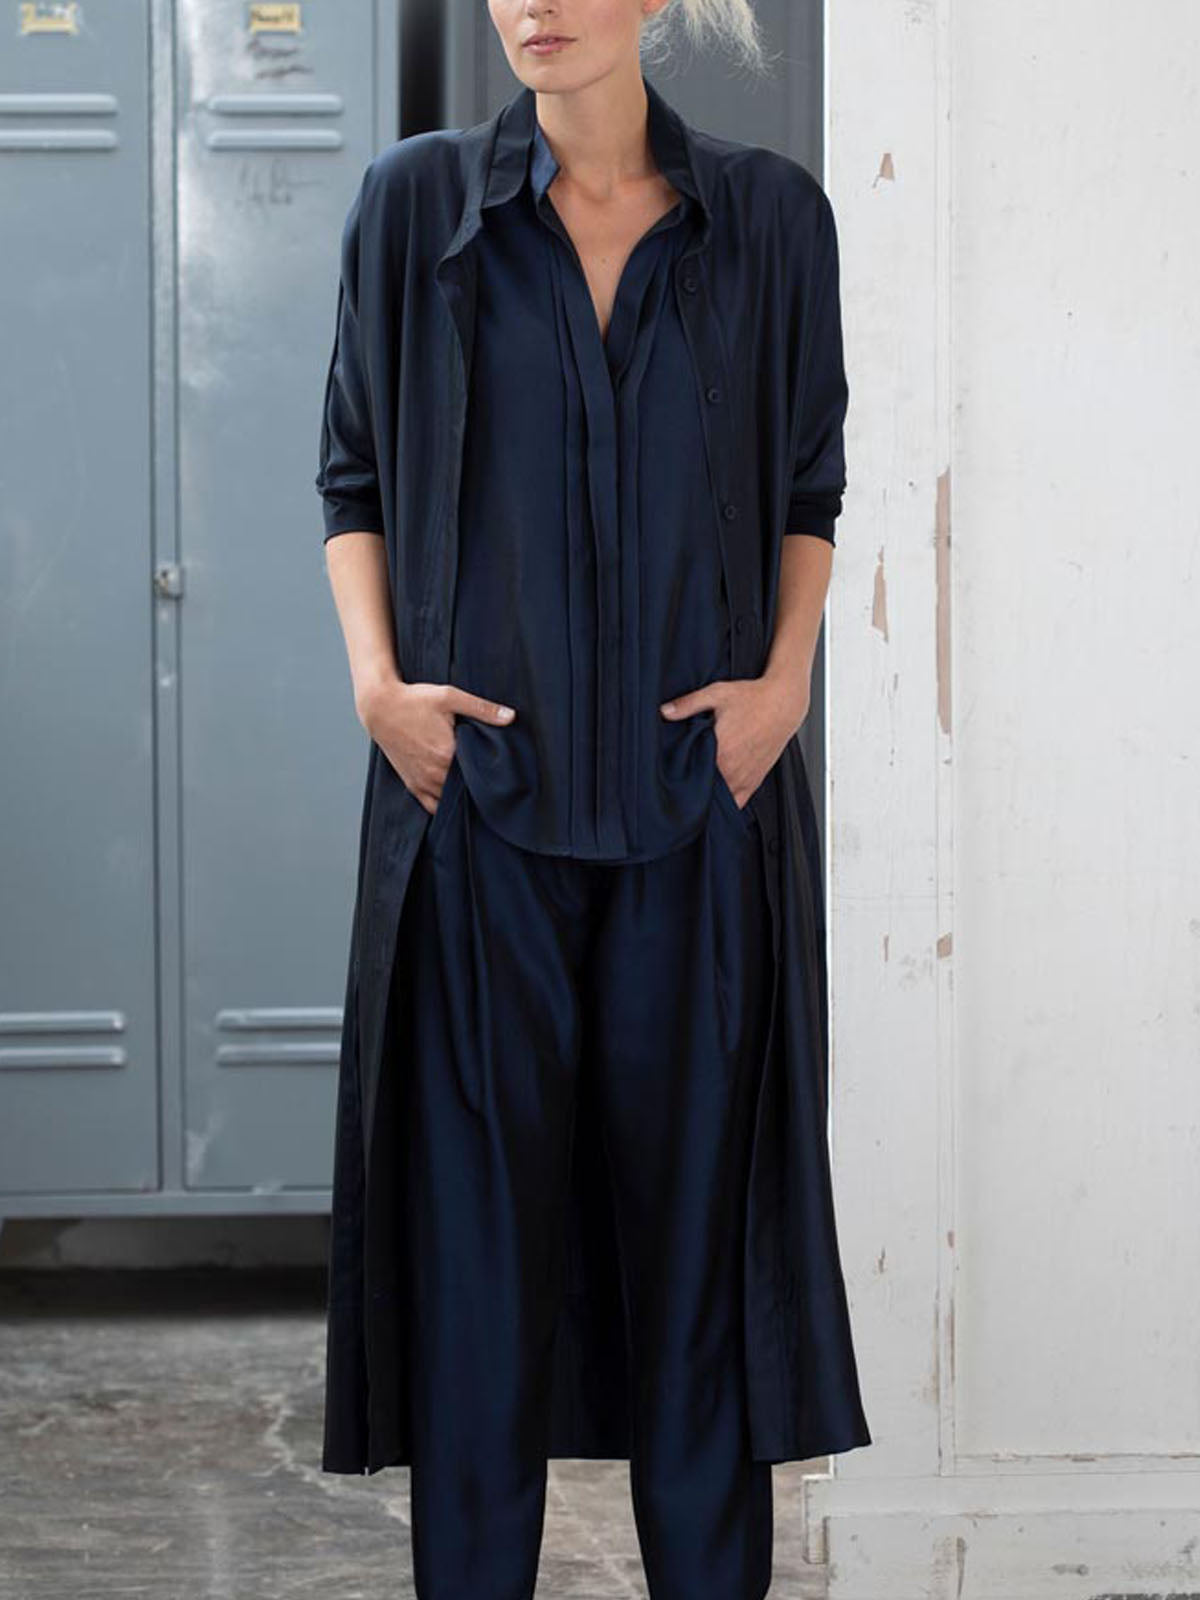 Ania Schierholt Long Blouse in Contrast Fabrics - Navy Blue, Shirts, Ania Schierholt, Blue Women - Blue Women's Clothing